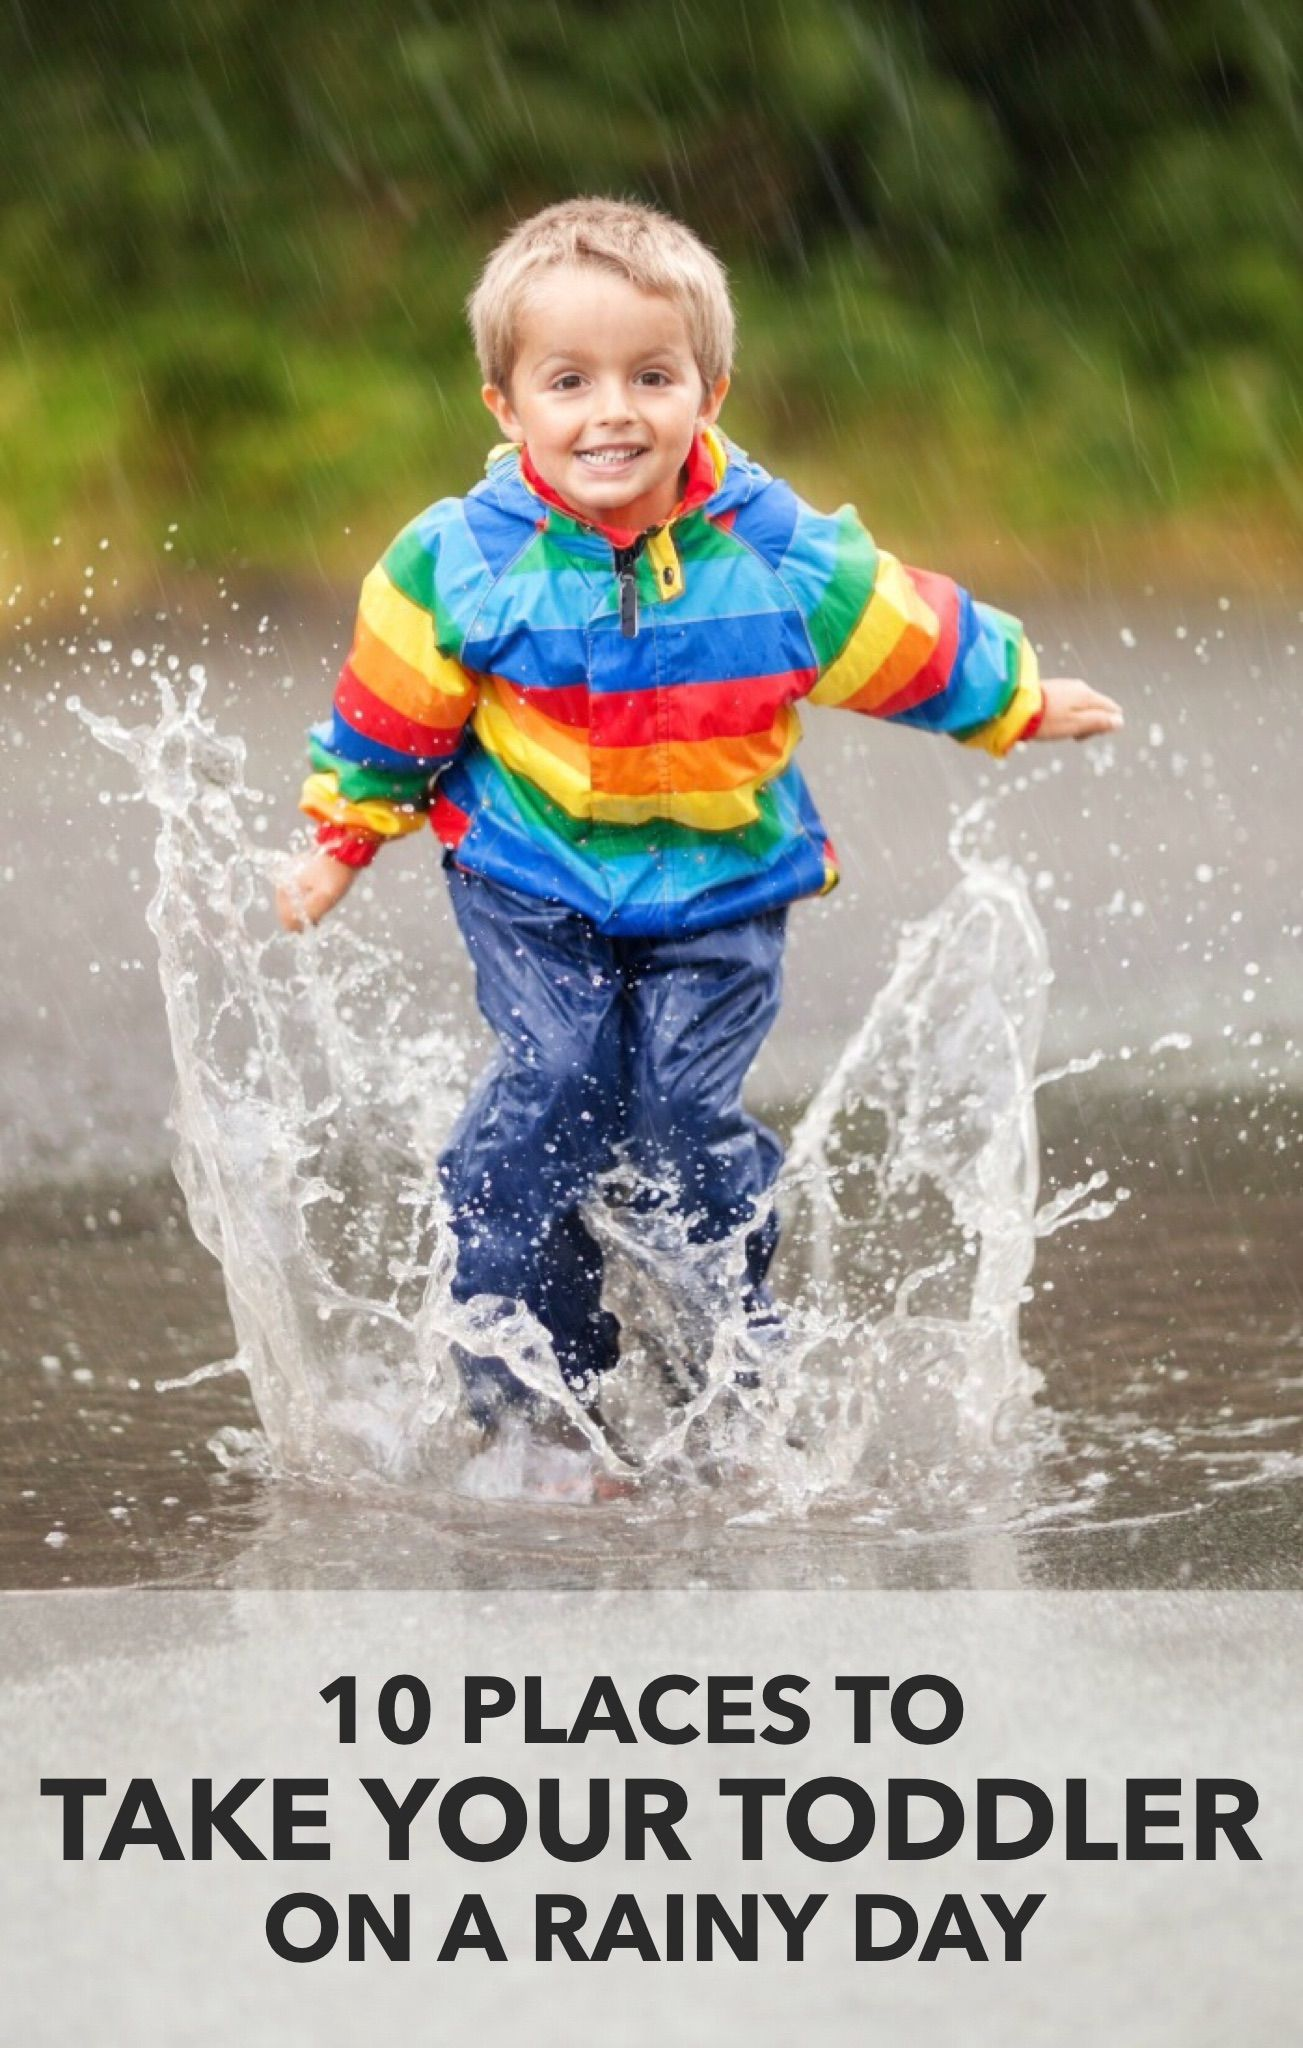 10 Awesome Places To Take A Toddler On A Rainy Day